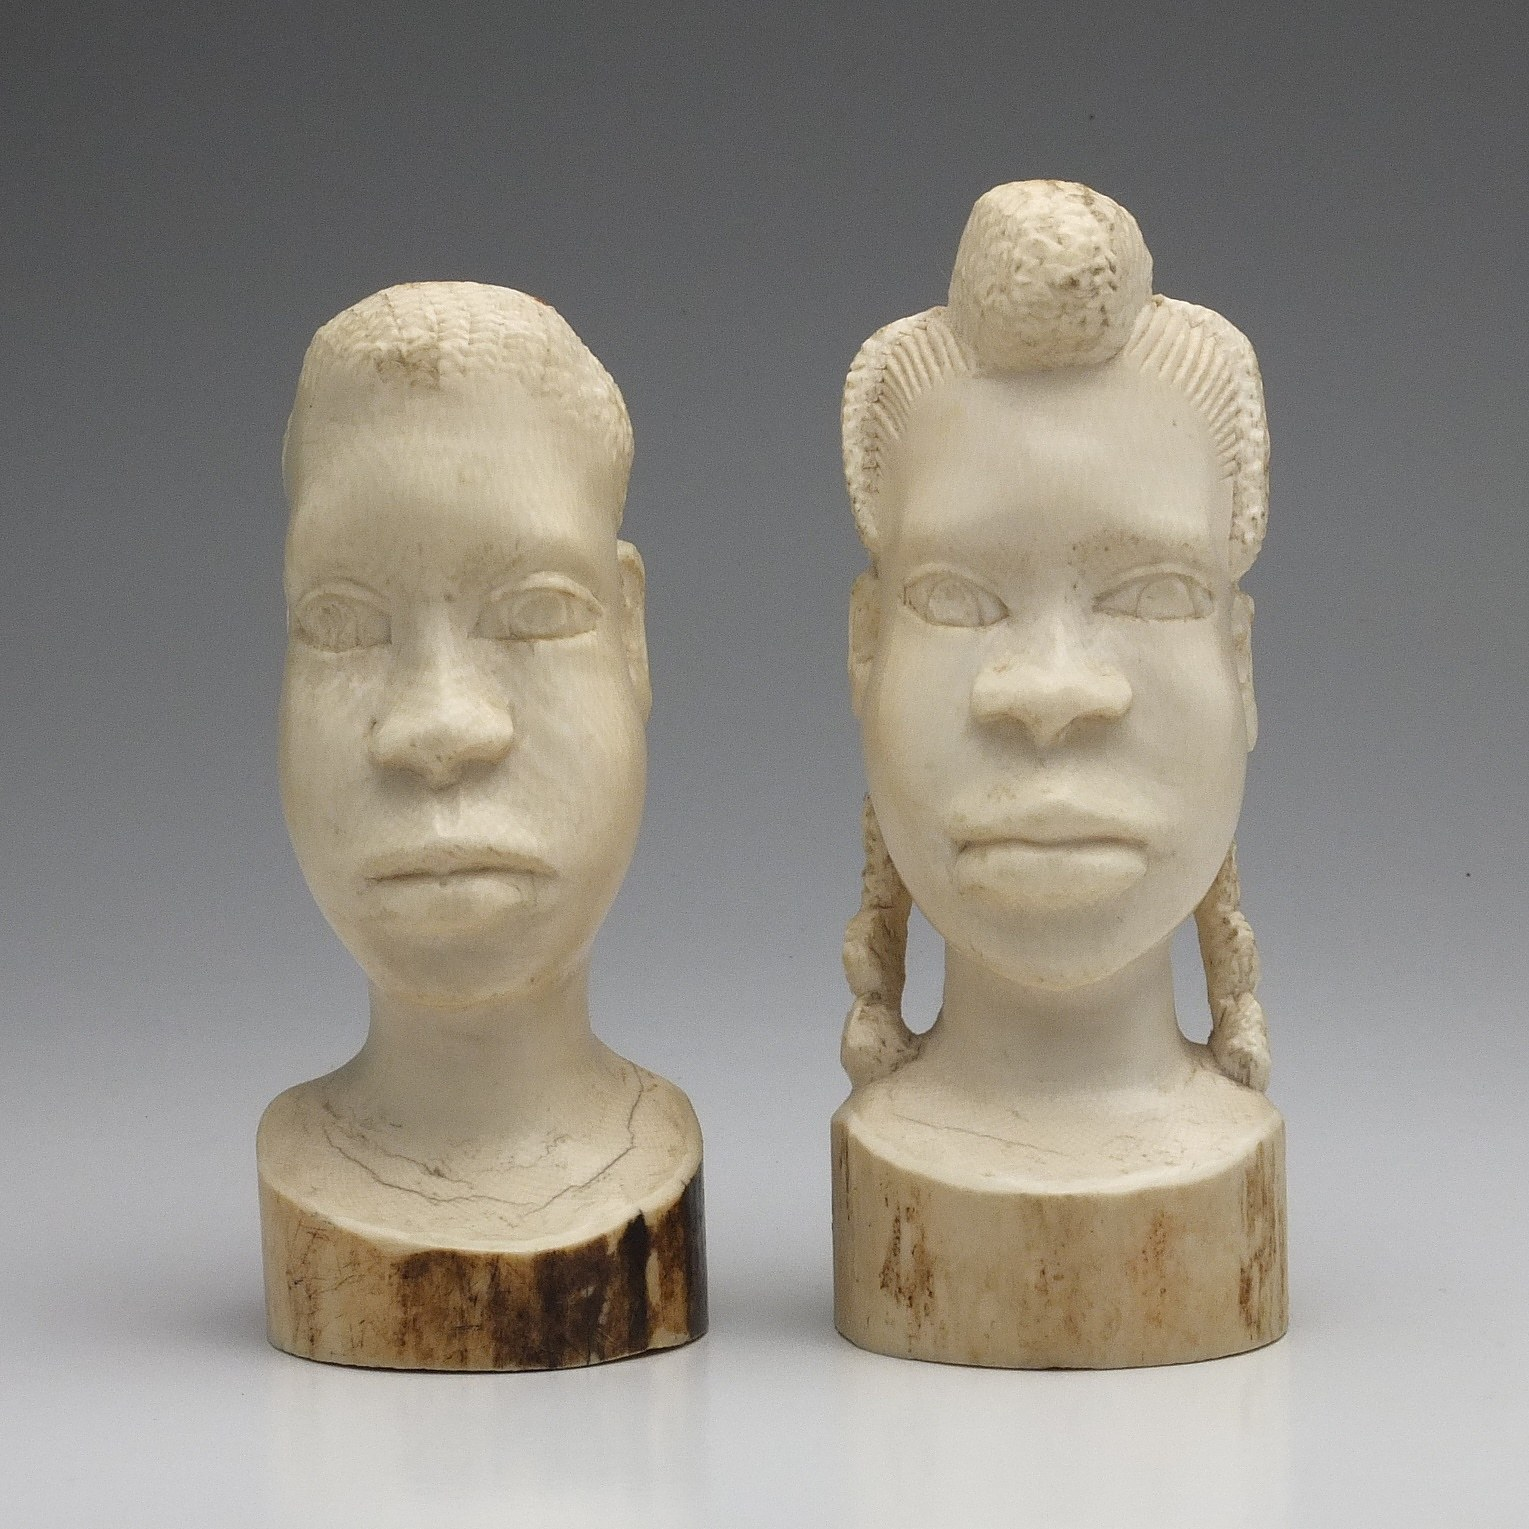 'Two African Carved Ivory Busts'